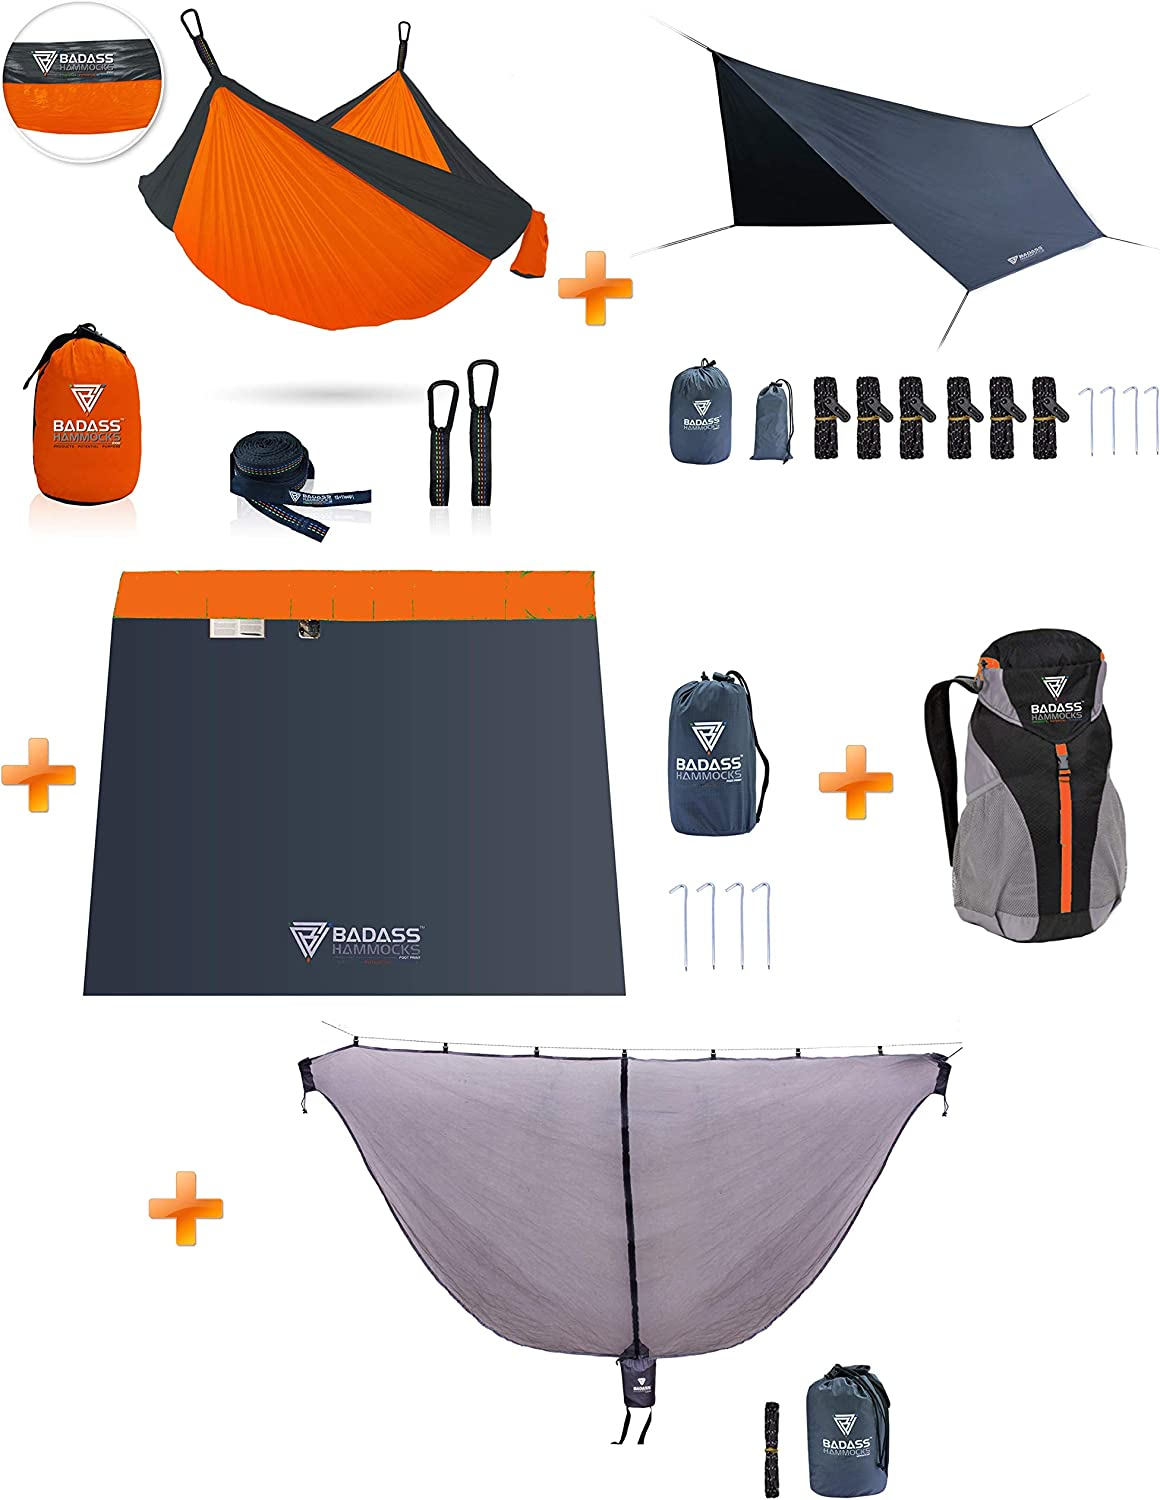 Badass Hammocks Hammock Camping System Save Your Money and Buy it in a Bundle – Hammock, Carabiners, Tree Straps, Mosquito Net, Rainfly, Footprint, Packaged in a Badass Backpack – Yes Please